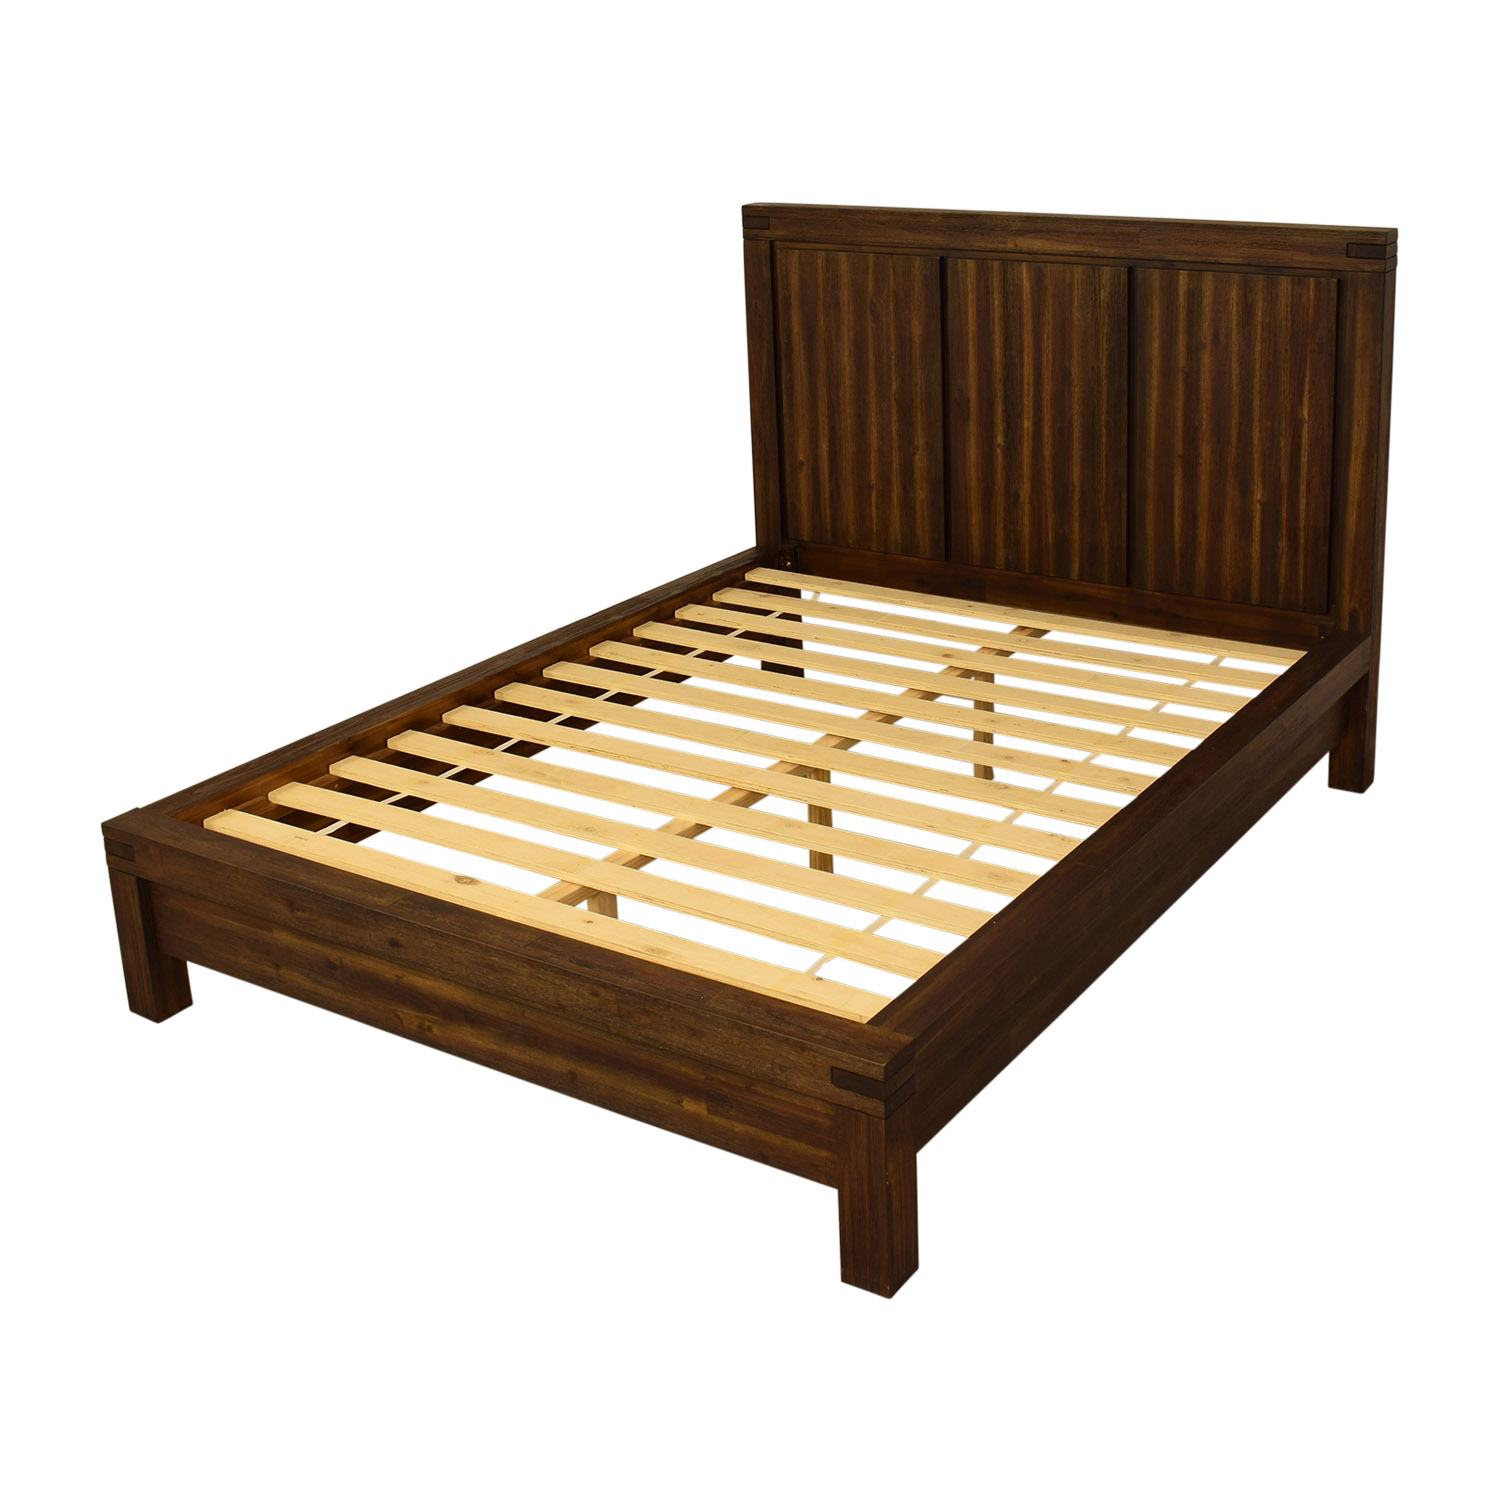 Macy's Macy's Queen Bed Frame for sale